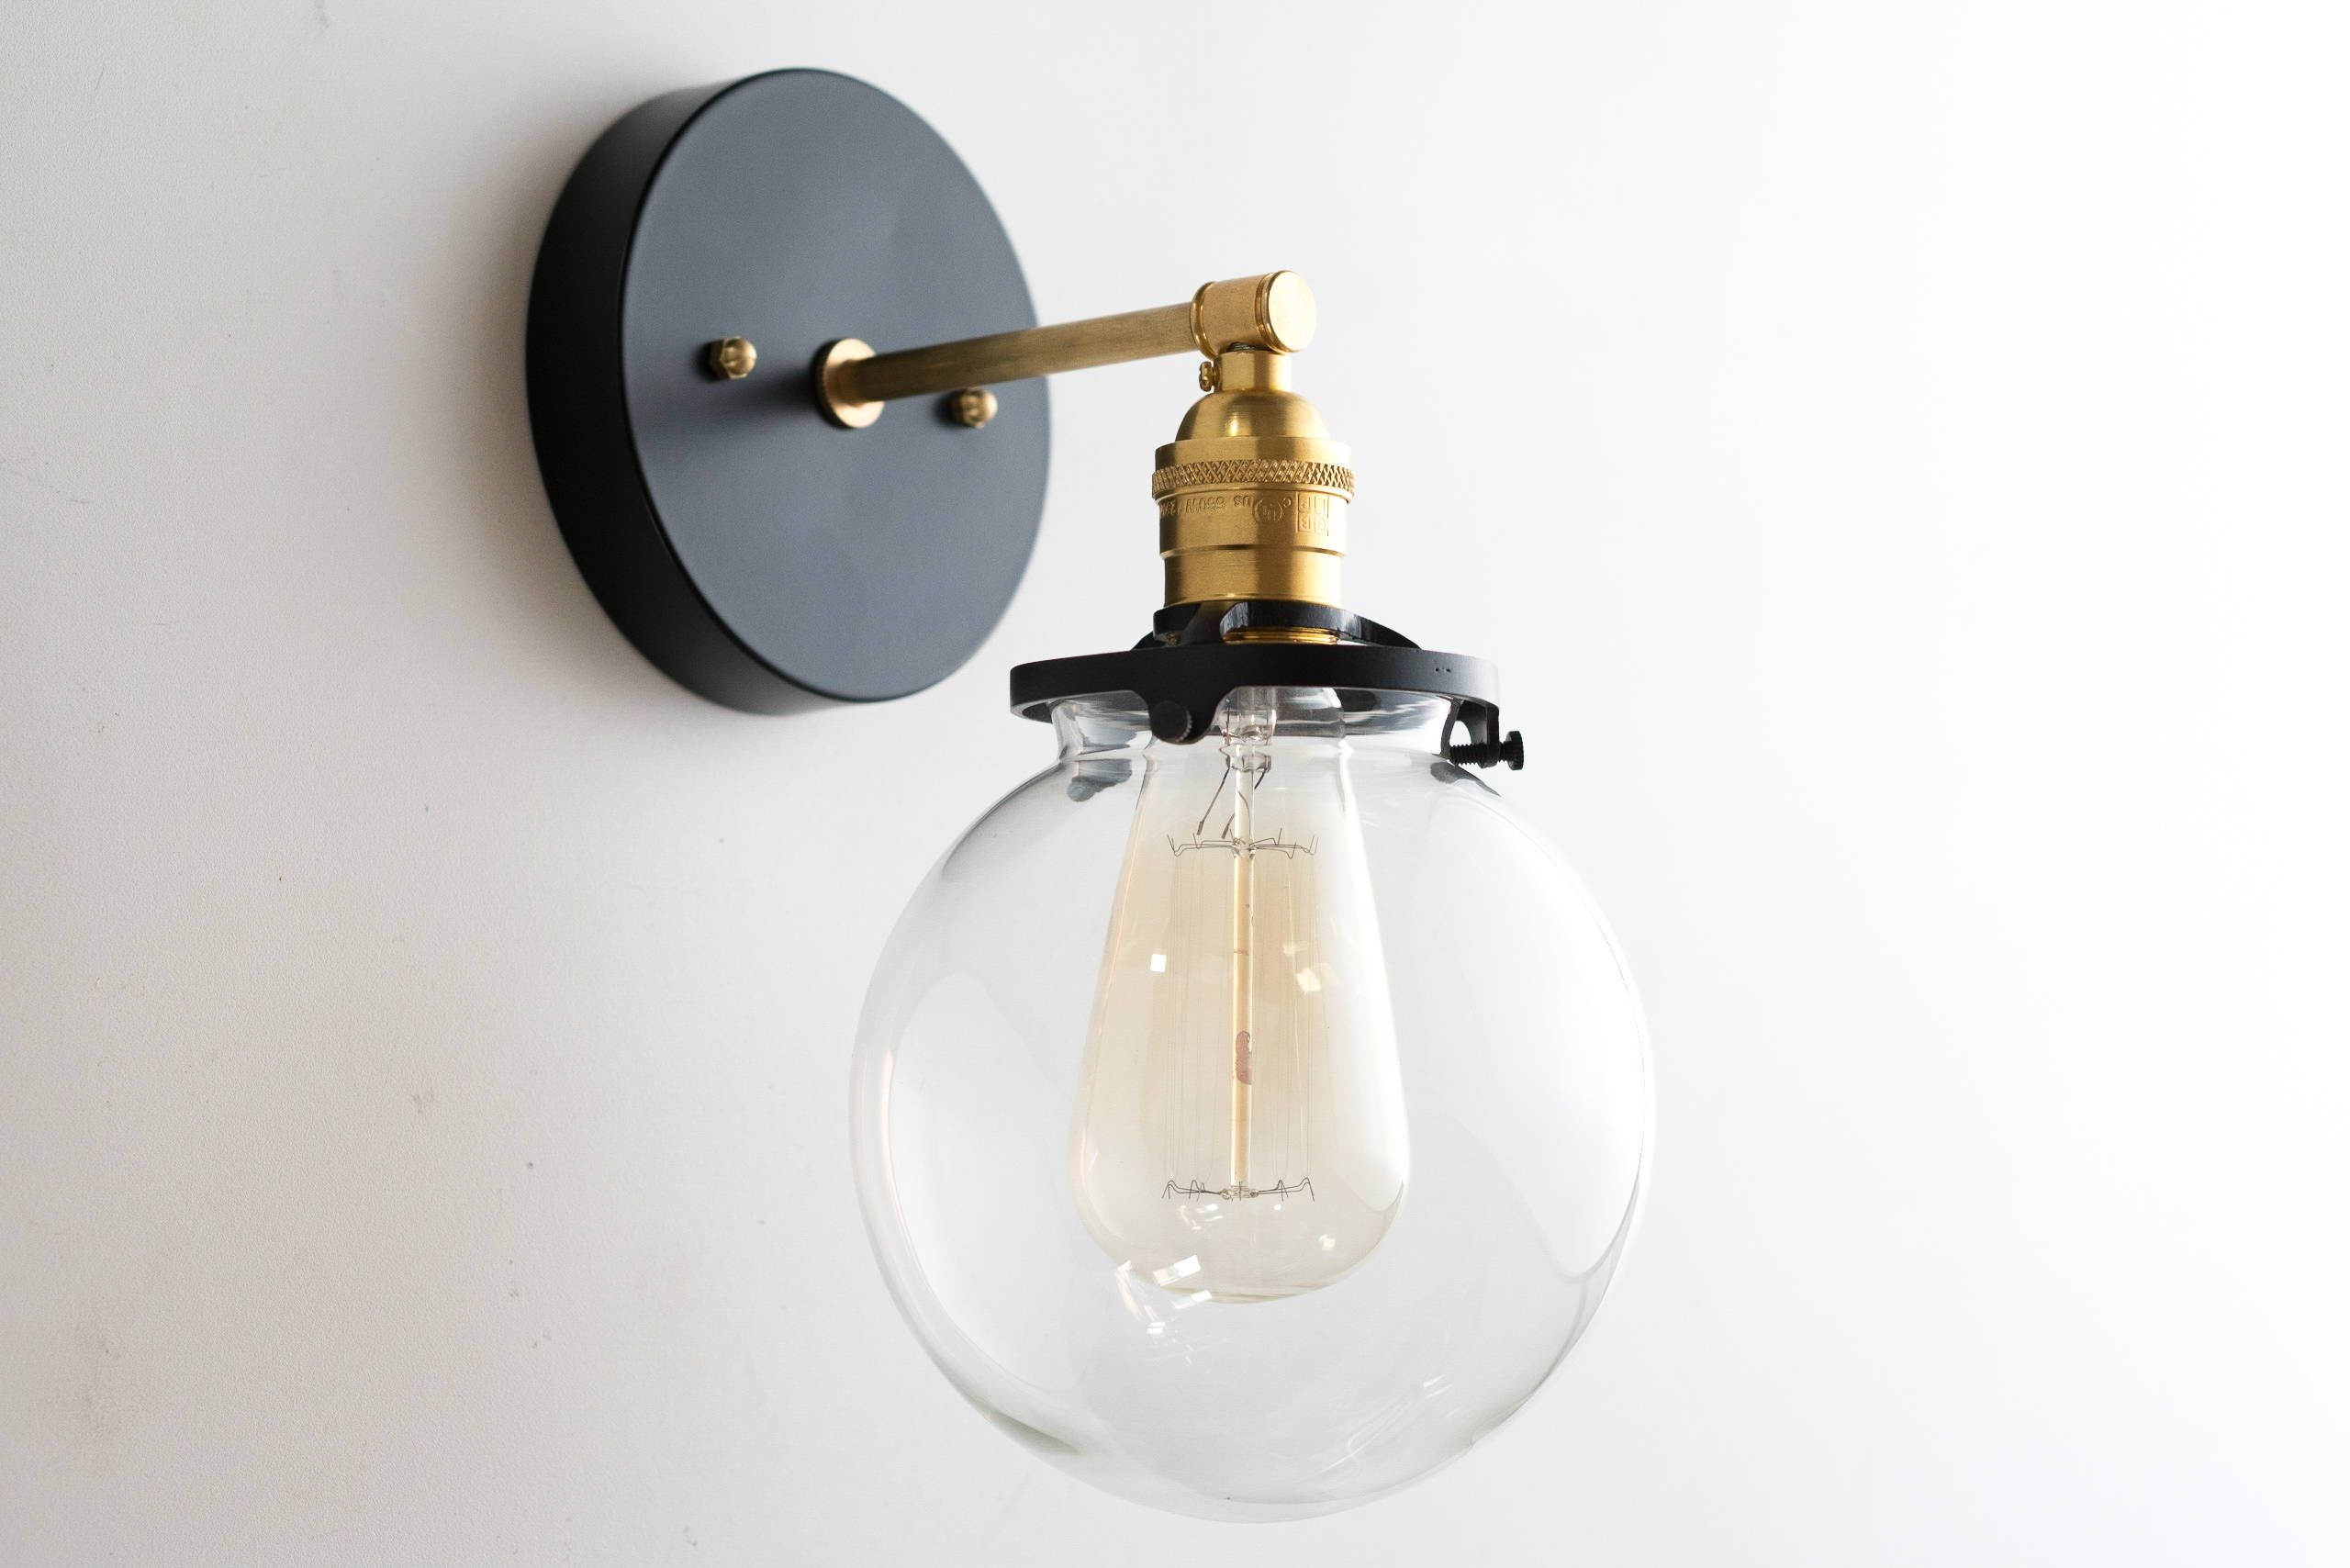 unique full bed farmhouse of lowes wall furniture finest nickel indoor battery design lights home emoji modern operated brushed light size and fixtures sconce decoration crystal cheap sconces at amazing